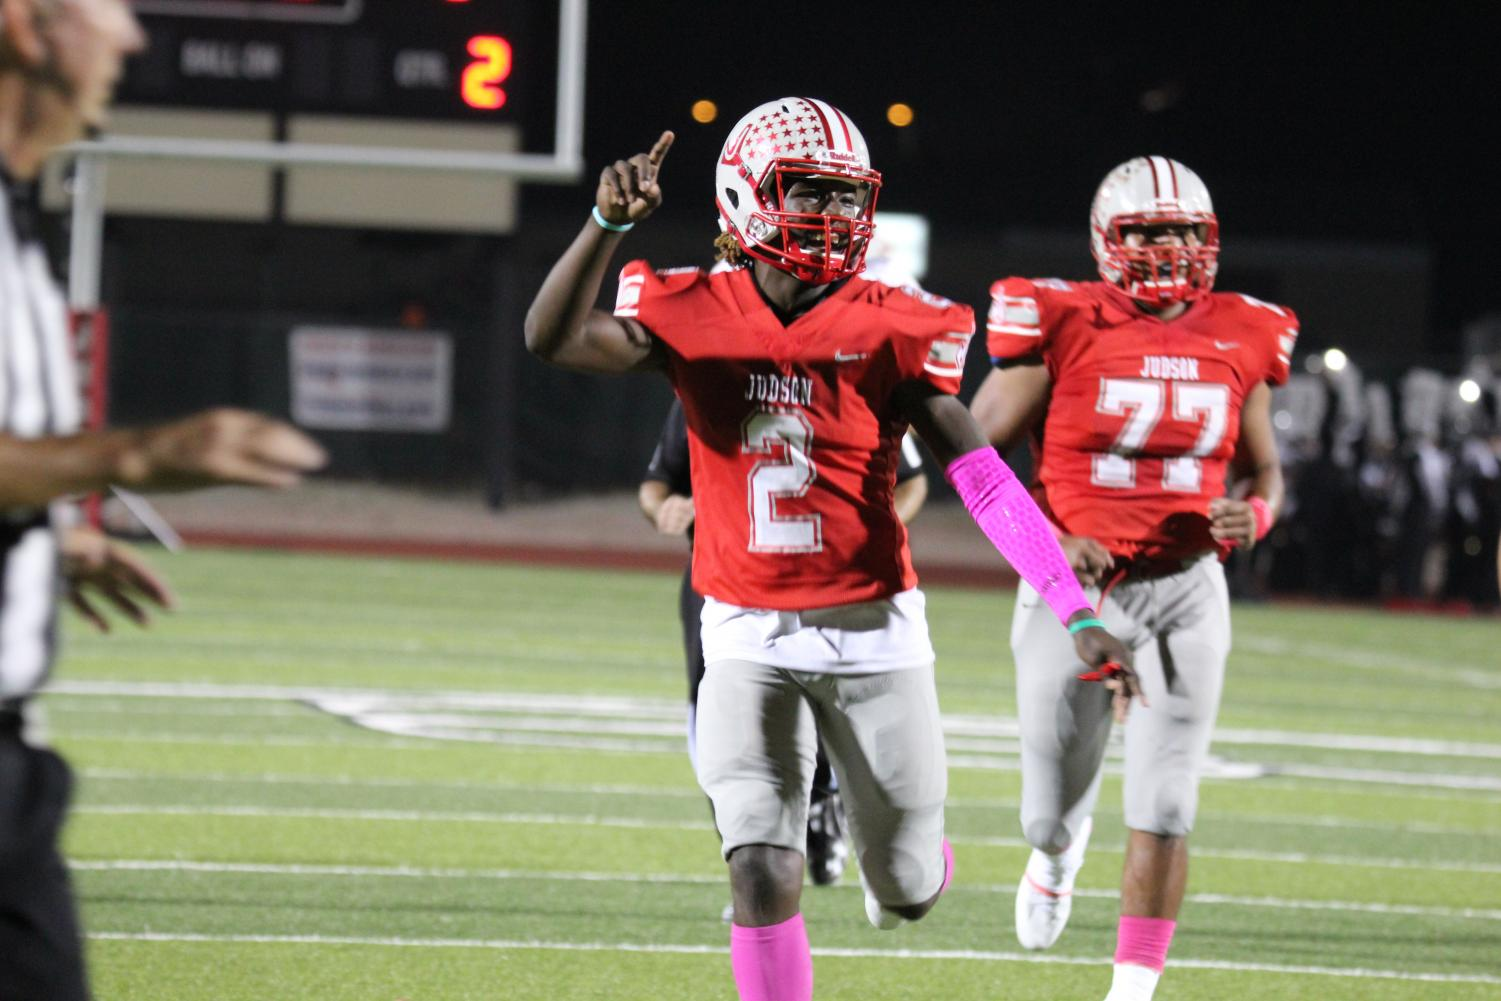 Junior Mike Chandler celebrates after a successful touchdown. Rockets took the win with a 53-3 score.